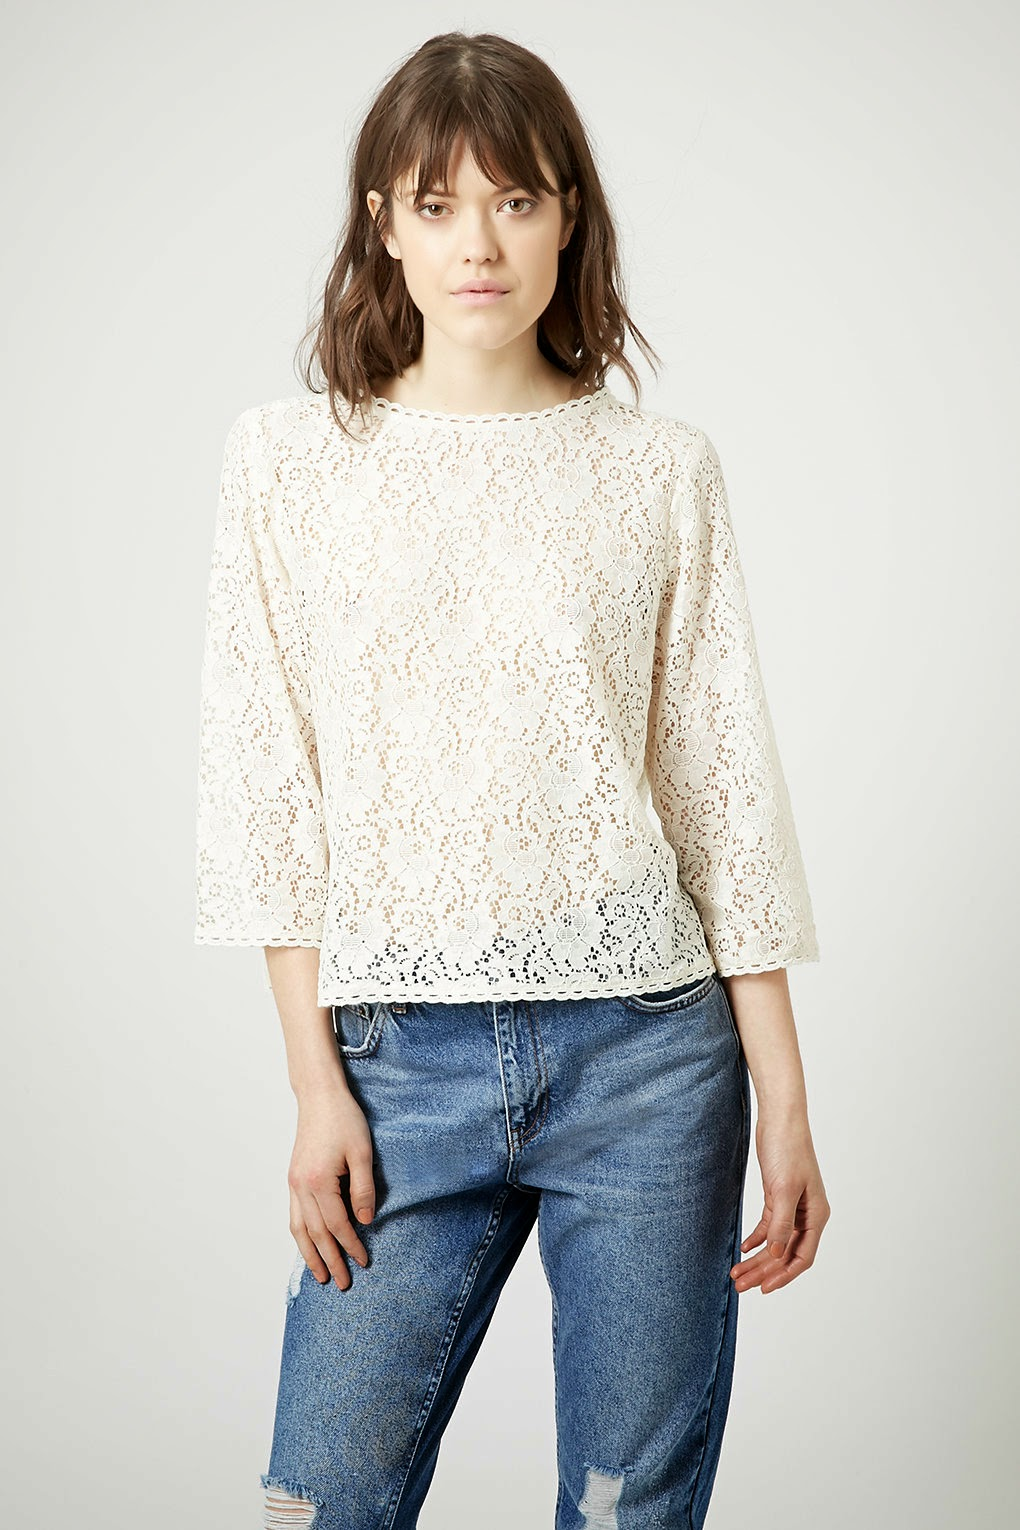 topshop white lace top, white lace long sleeved top